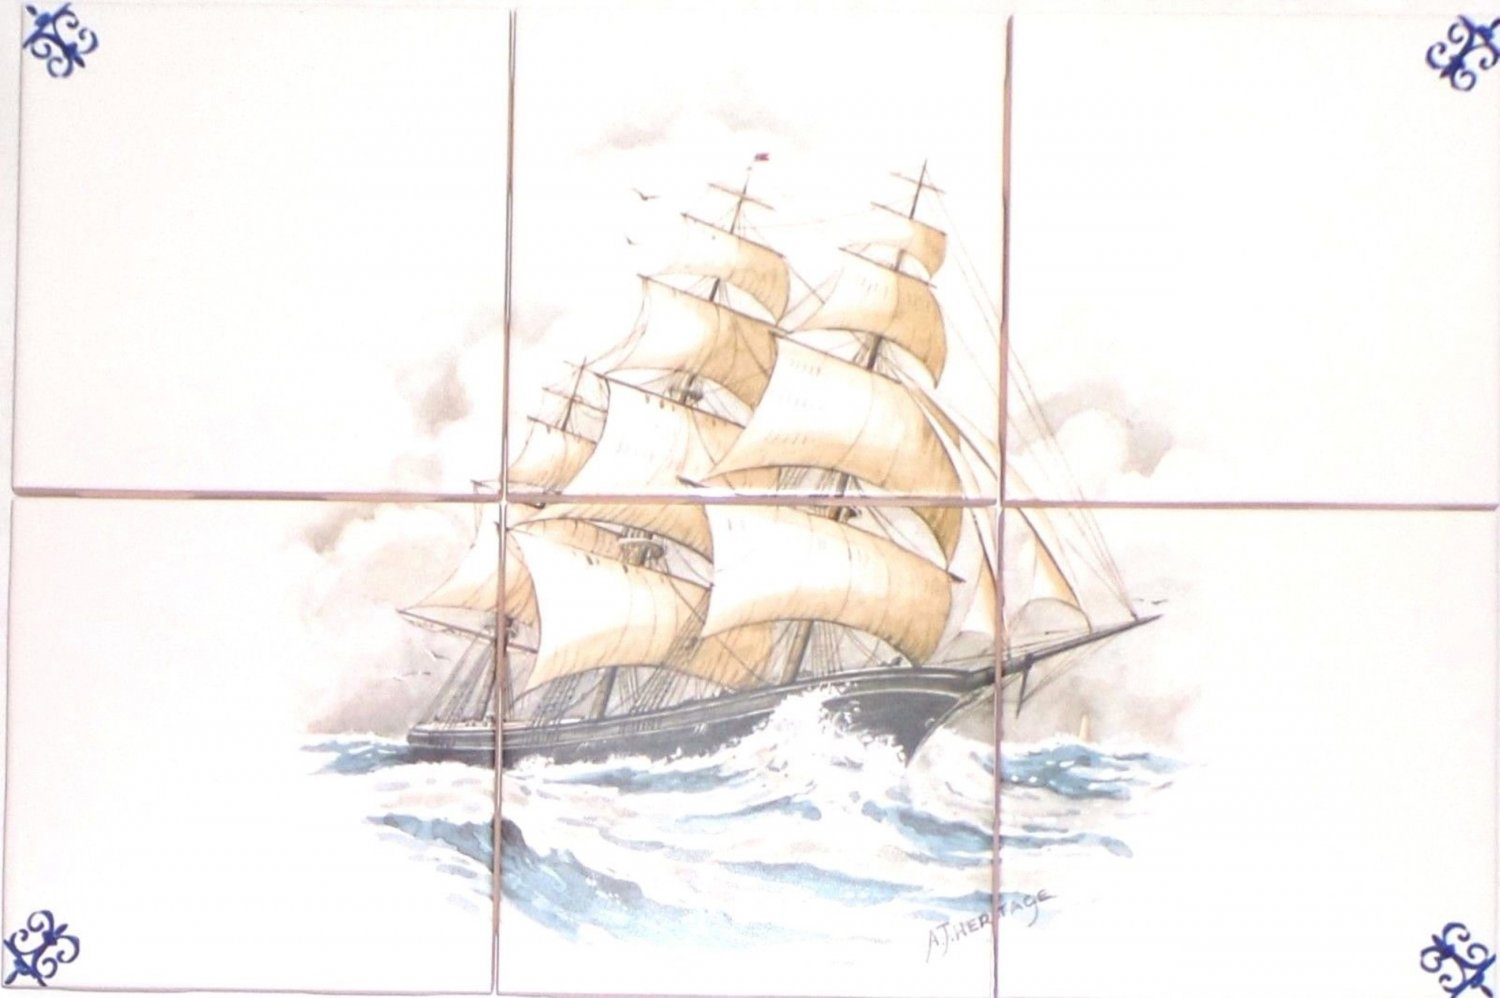 "Closeout Flying Cloud Ship Ceramic Tile Mural 6 pcs 4.25"" x 4.25"" Kiln Fired Wall Decor"